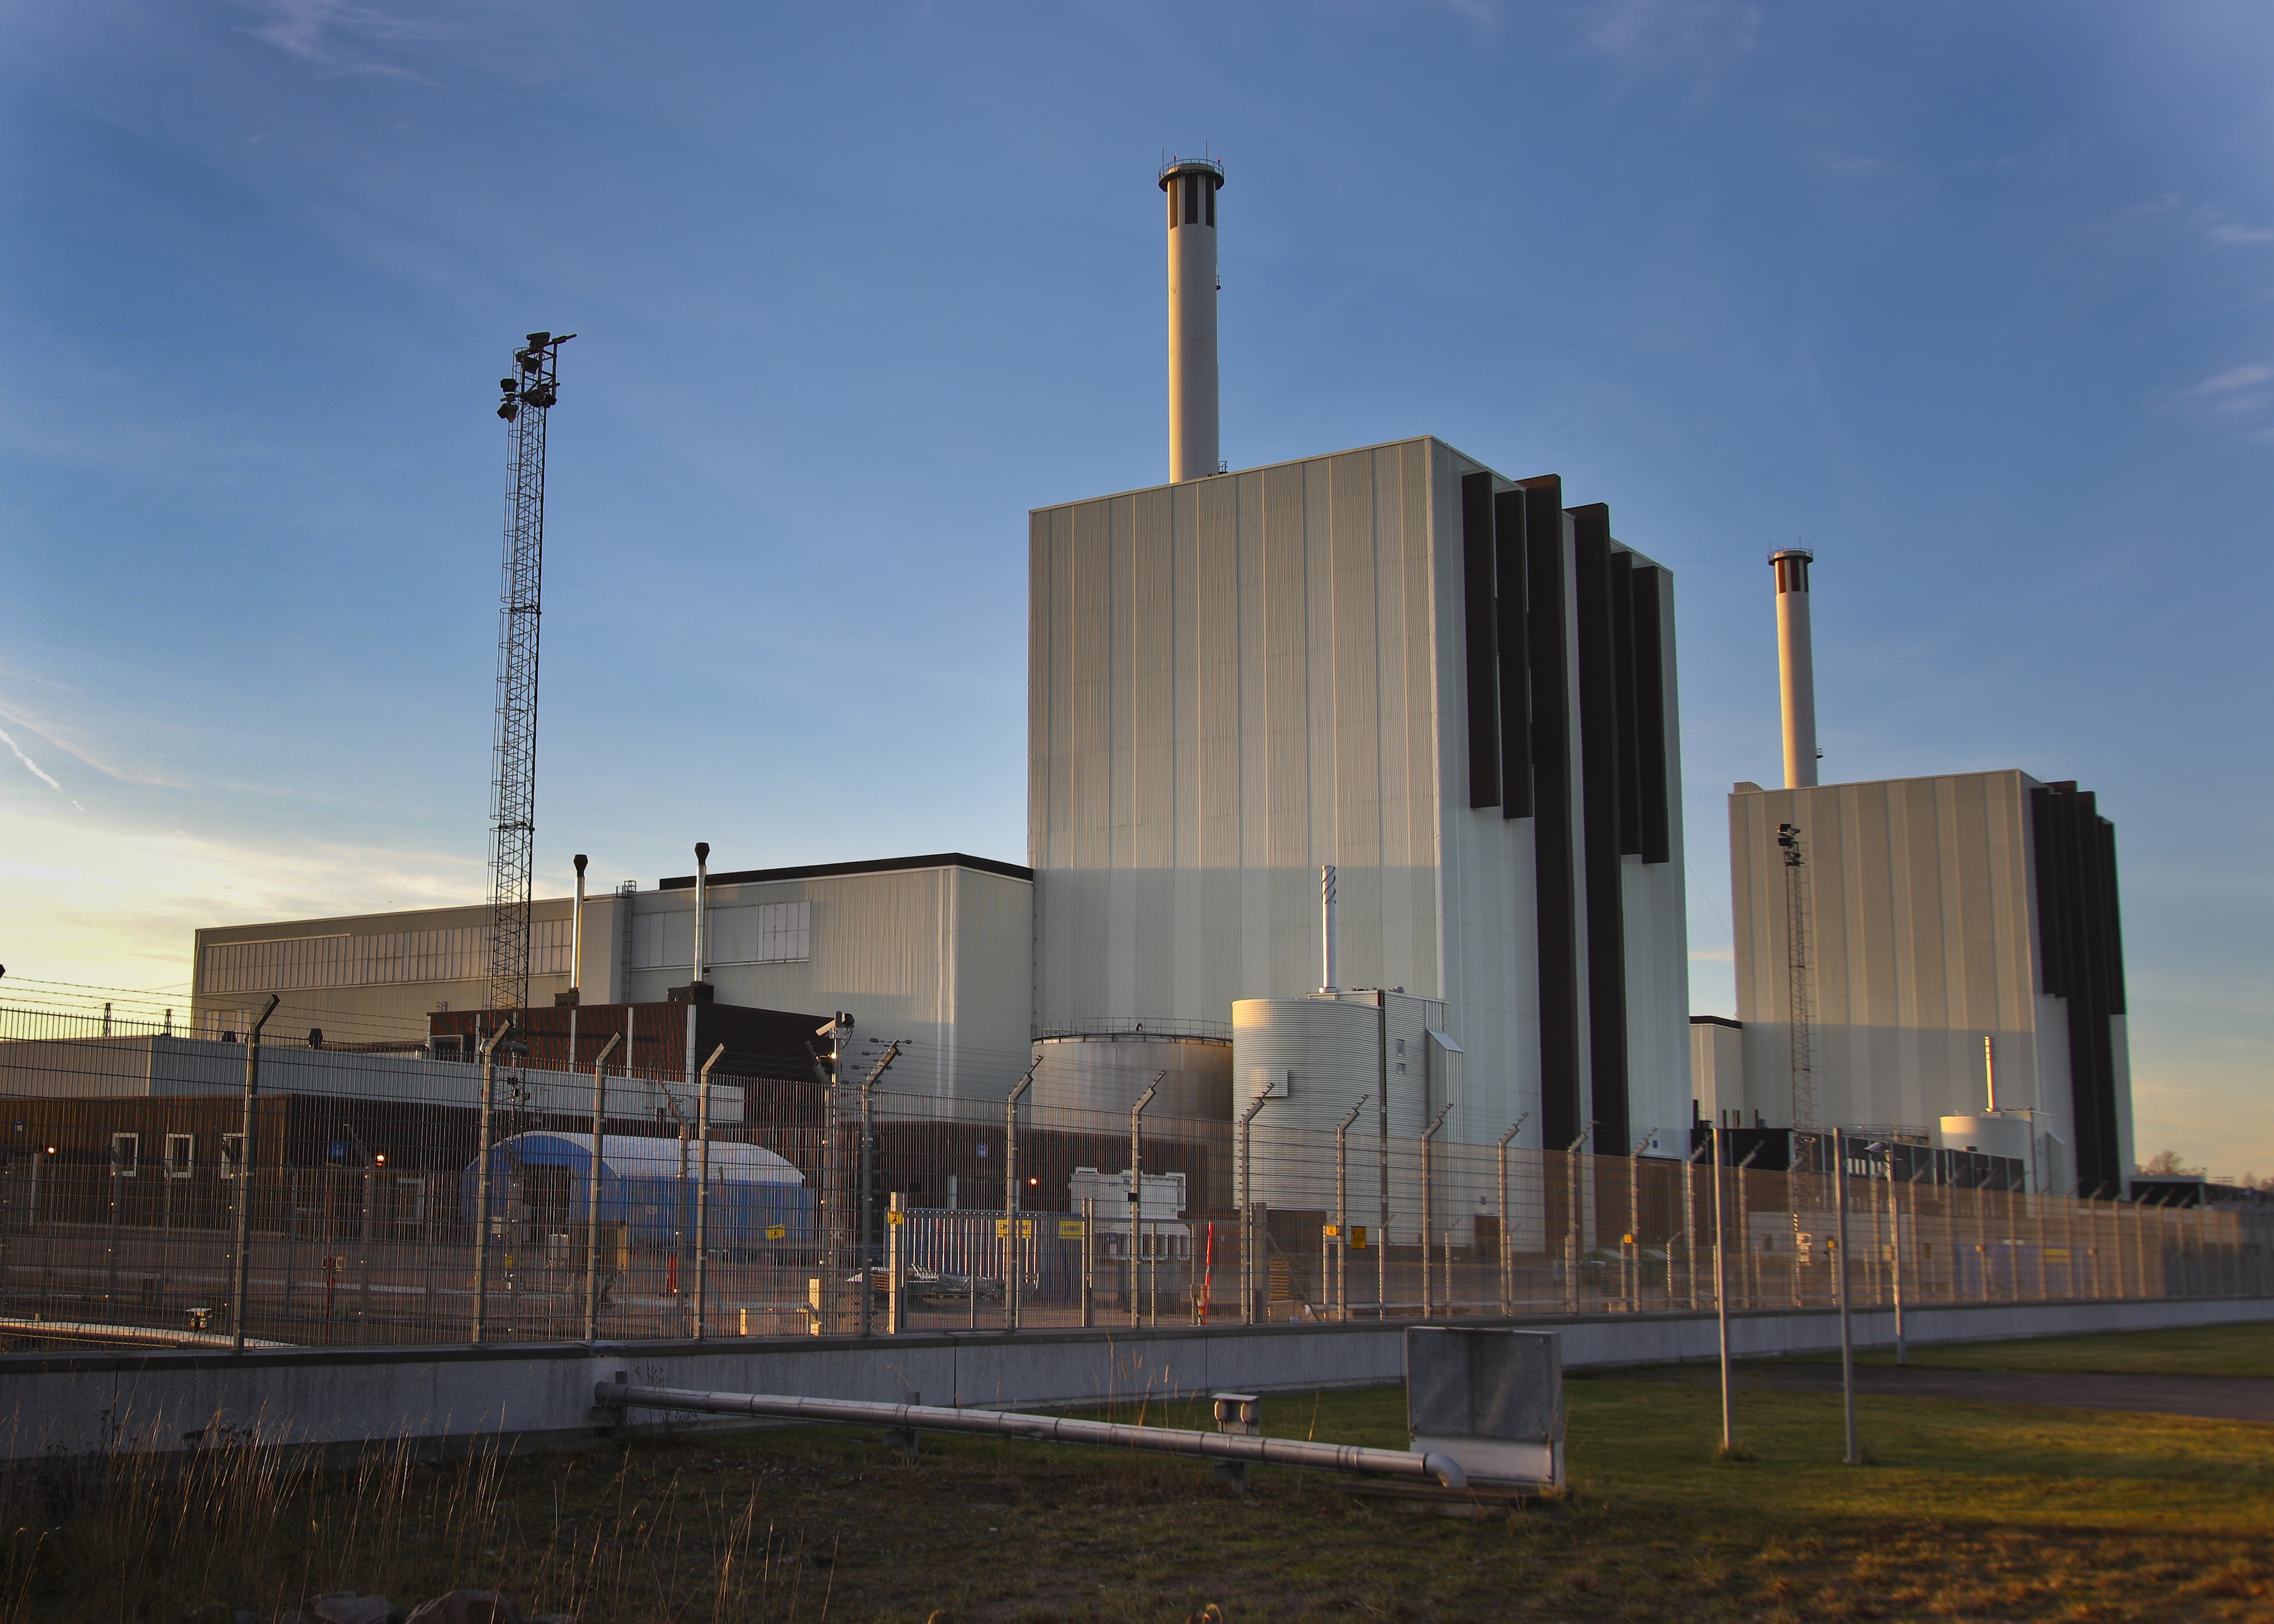 Forsmark nuclear plant exterior 02